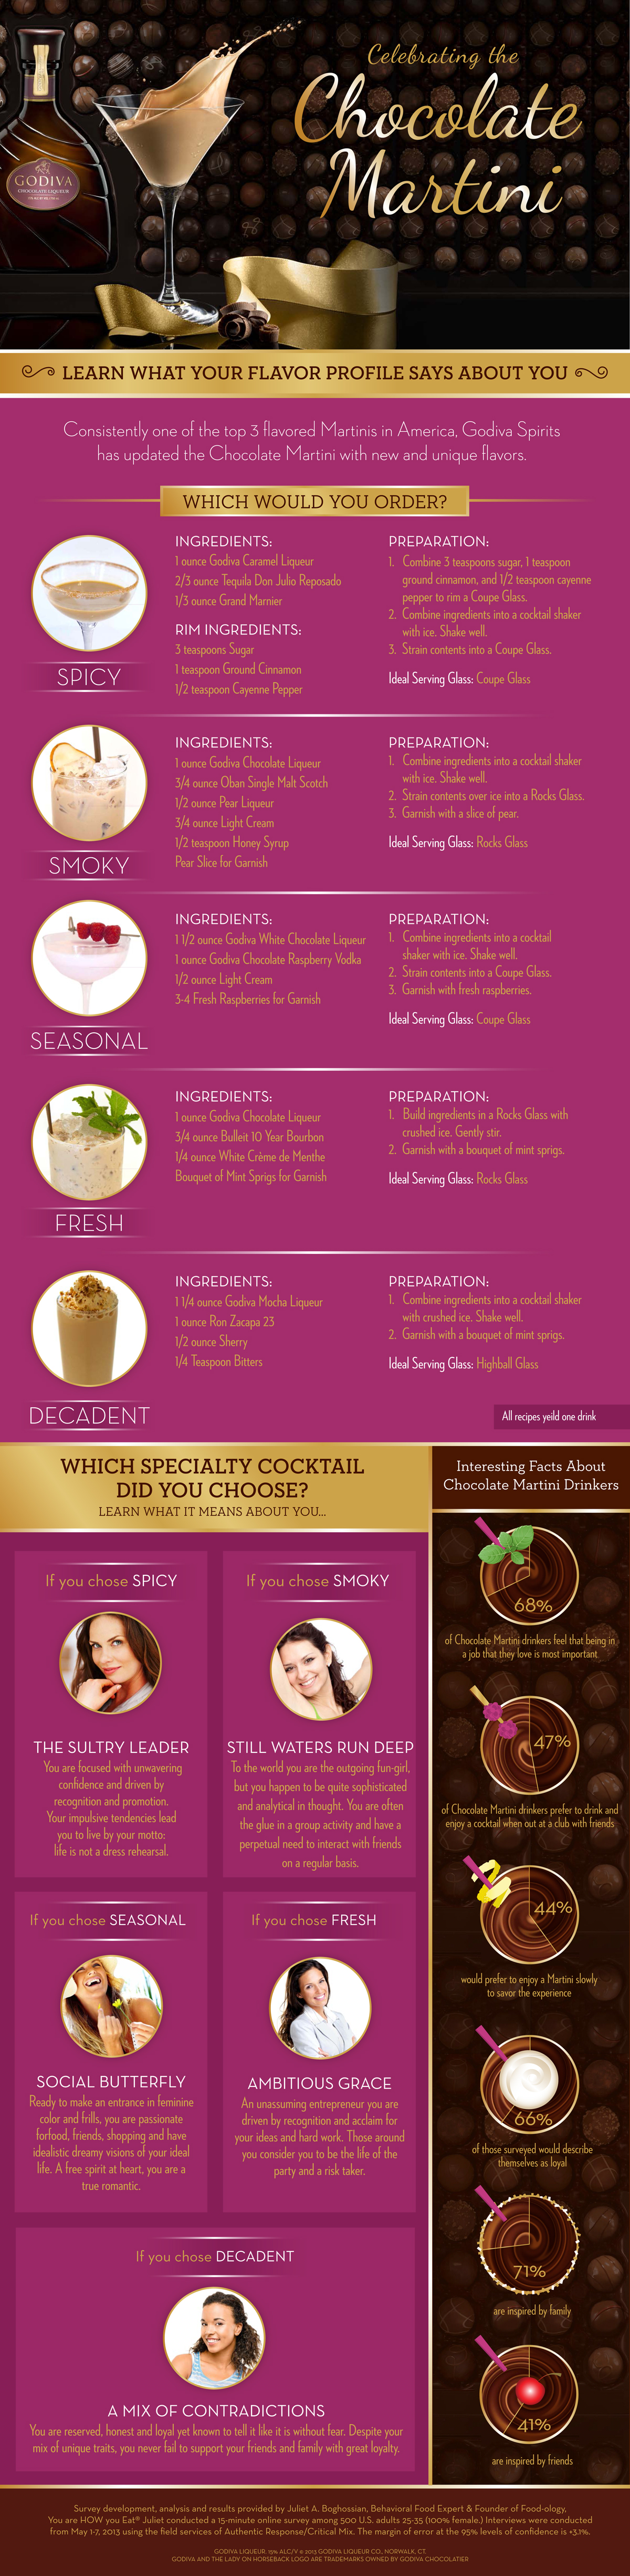 GODIVA Spirits infographic FINAL.jpg